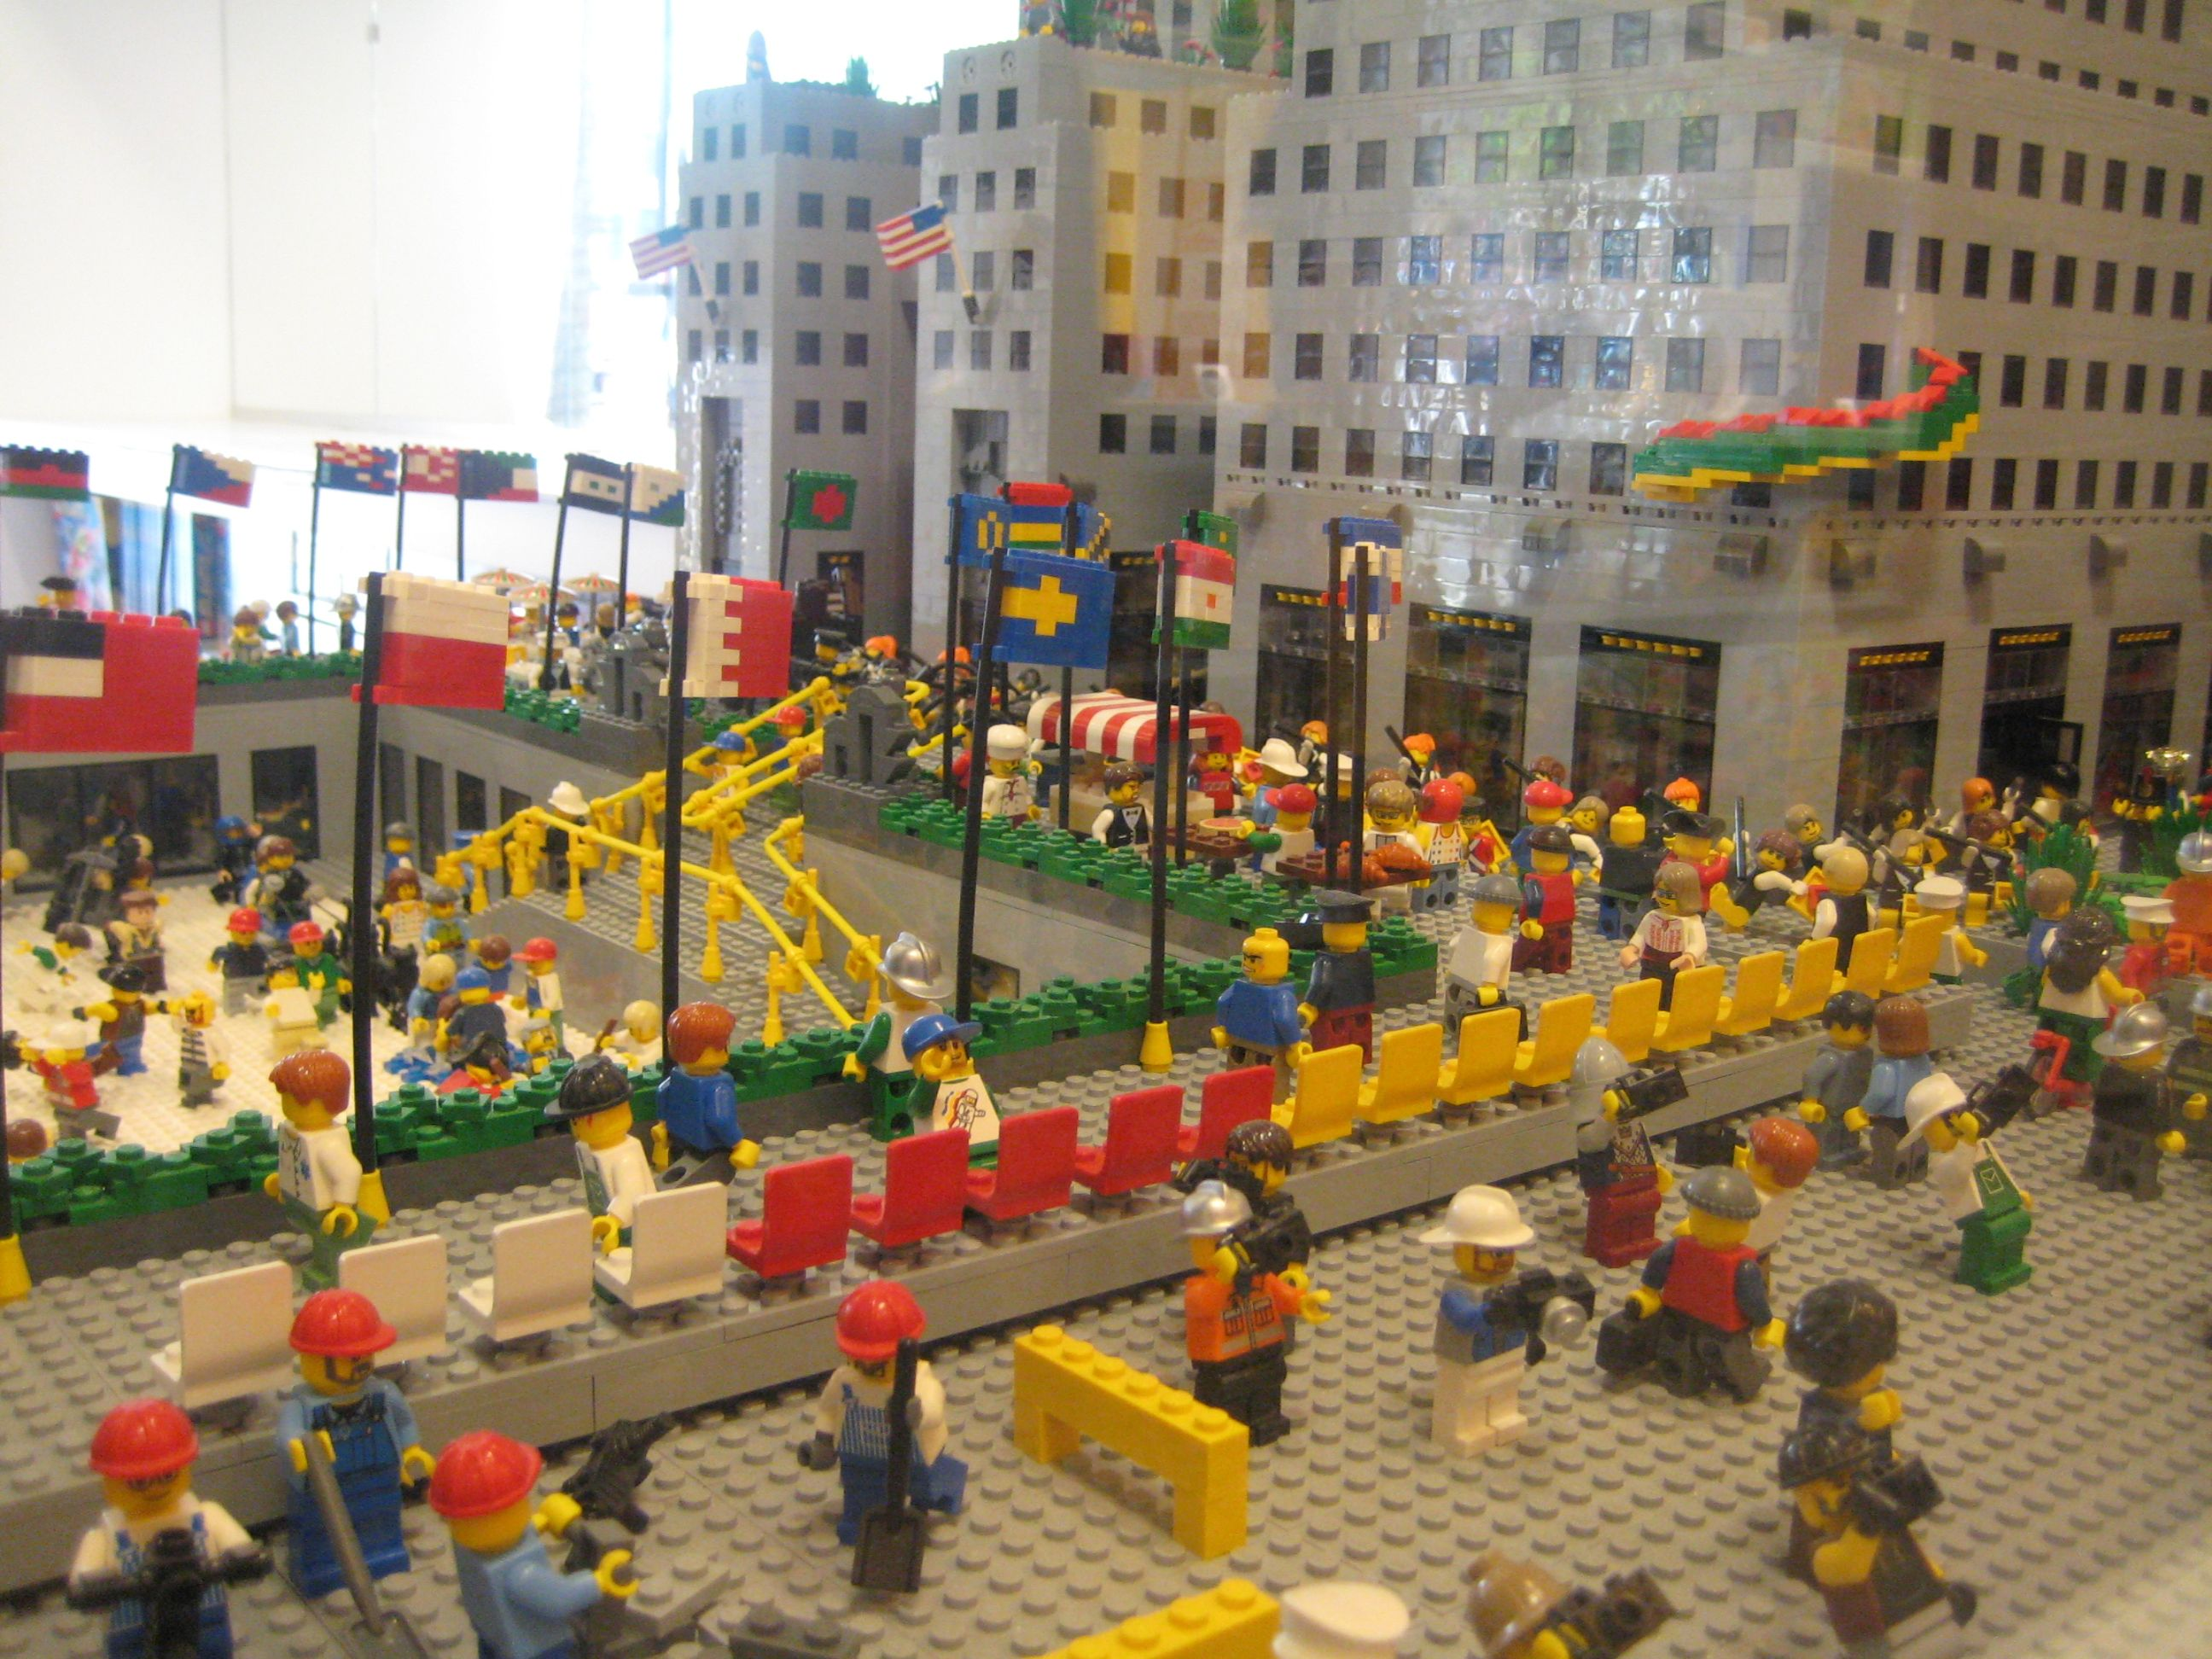 Lego Store In Rockefeller Center Must See New York City Megastore New York City Vacation New York Vacation New York City Travel